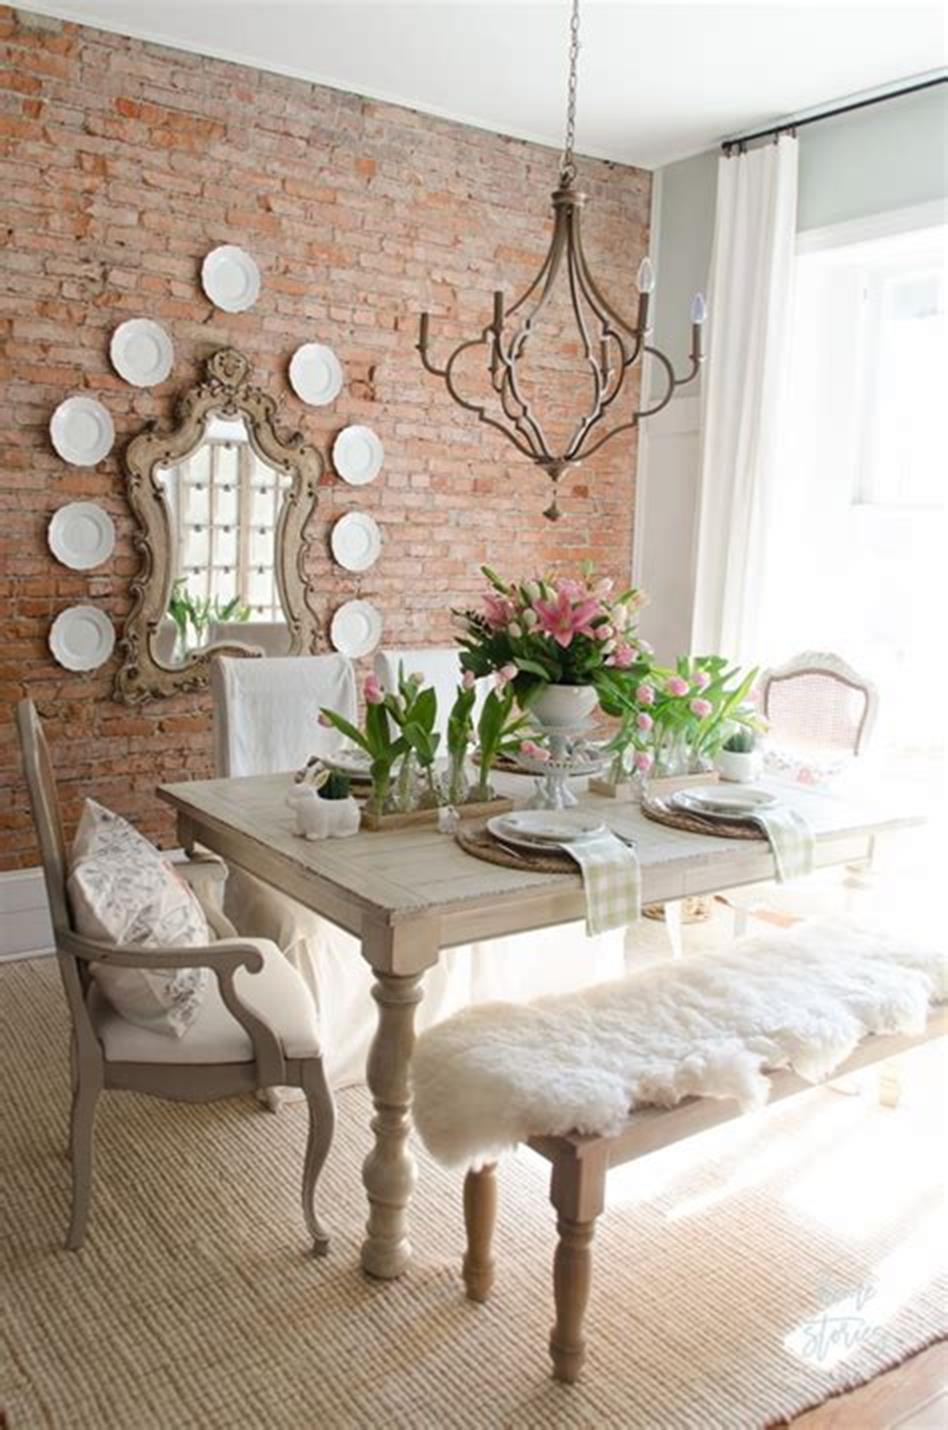 35 Stunning Spring Kitchen and Dining Room Decorating Ideas 2019 25